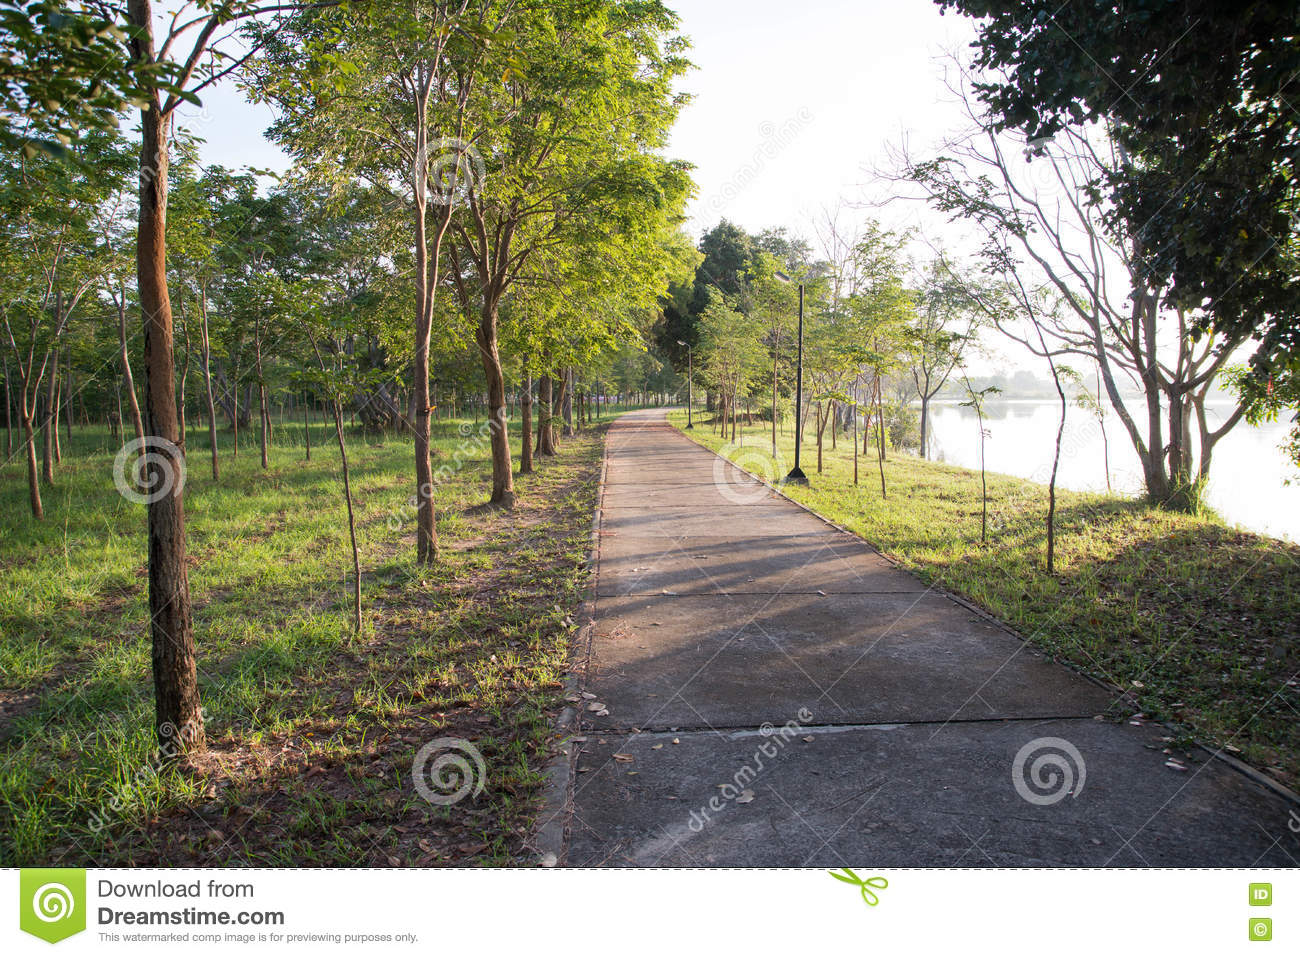 Landscape Of Straight Road Under The Trees Road Tree Stock Photo ... for Straight Road With Trees  103wja